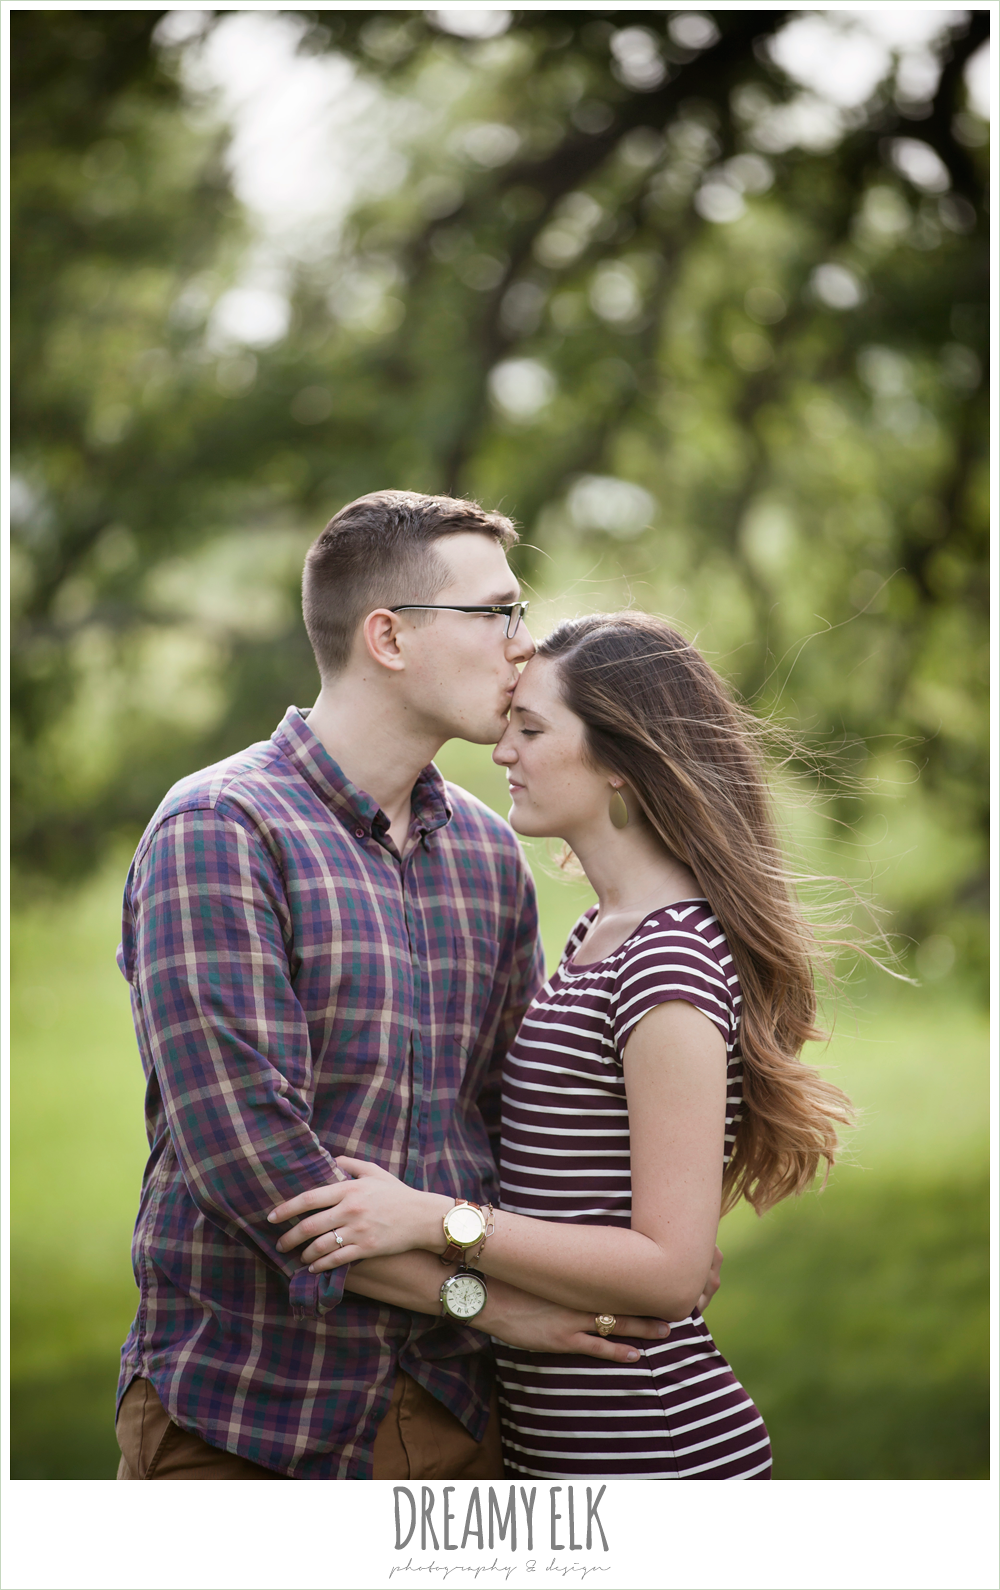 guy kissing girl on forehead, woodsy engagement photo, research park, college station, texas {dreamy elk photography and design}